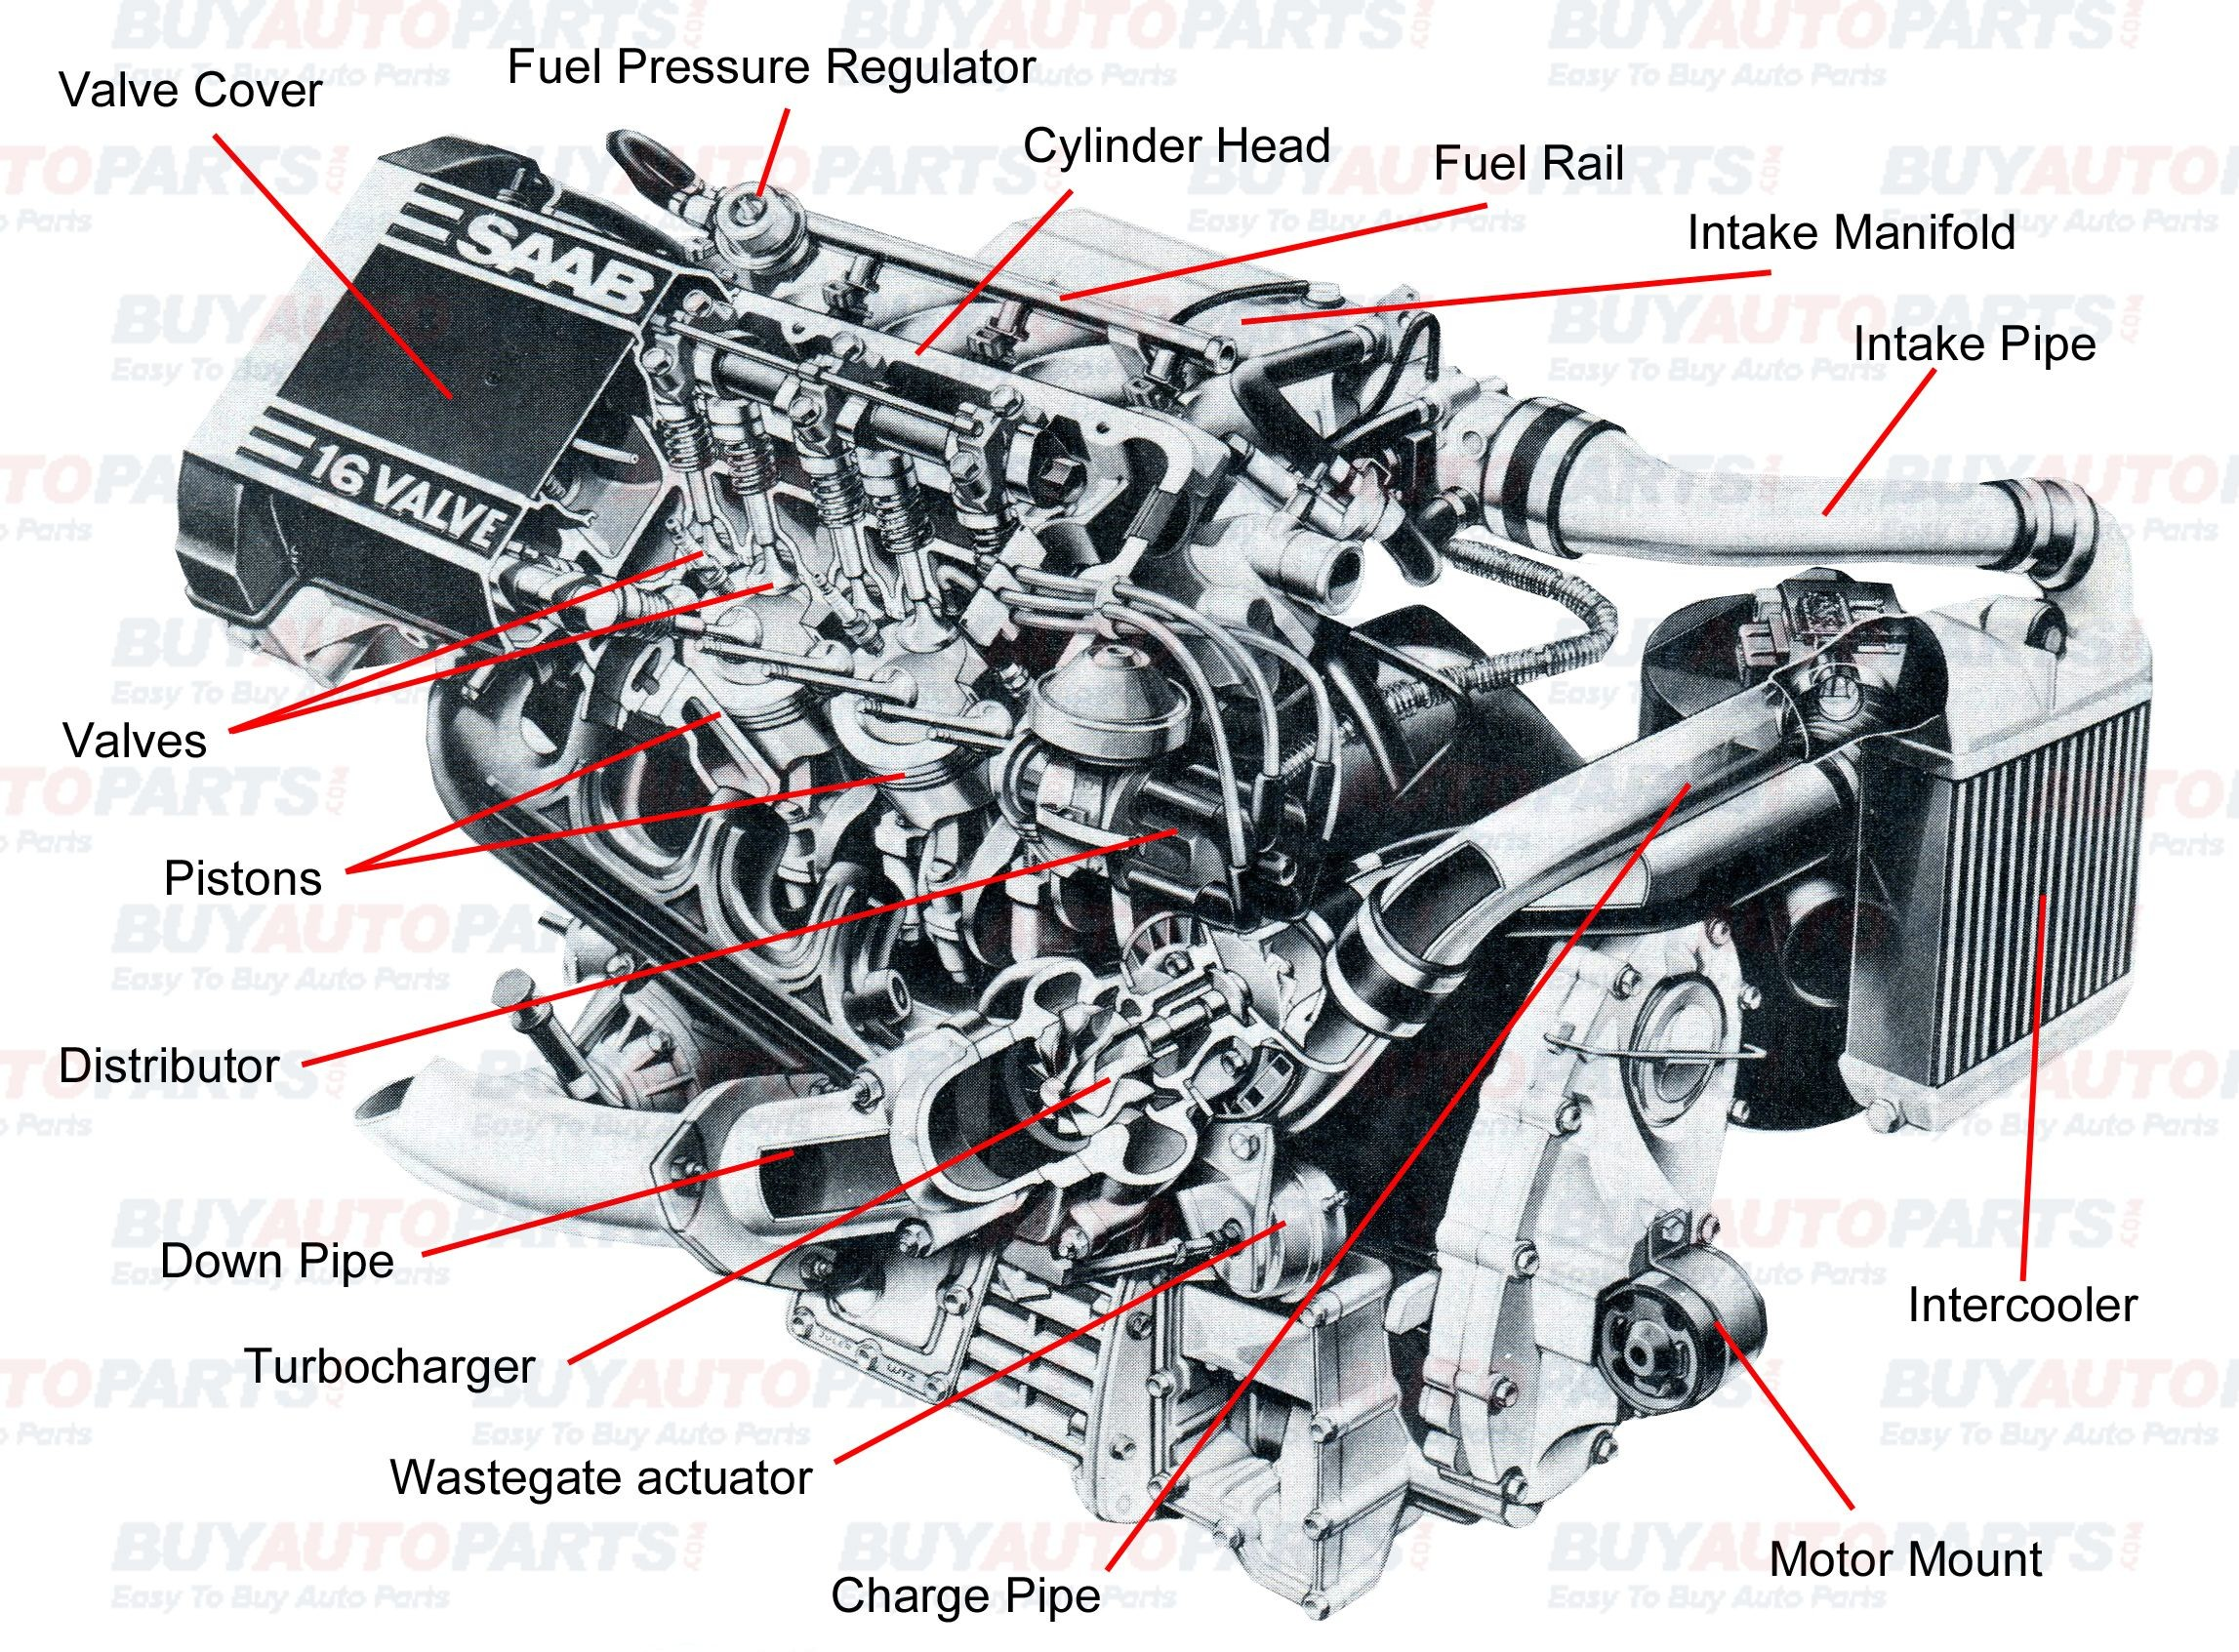 Diagram Of Engine Parts Pin by Jimmiejanet Testellamwfz On What Does An Engine with Turbo Of Diagram Of Engine Parts